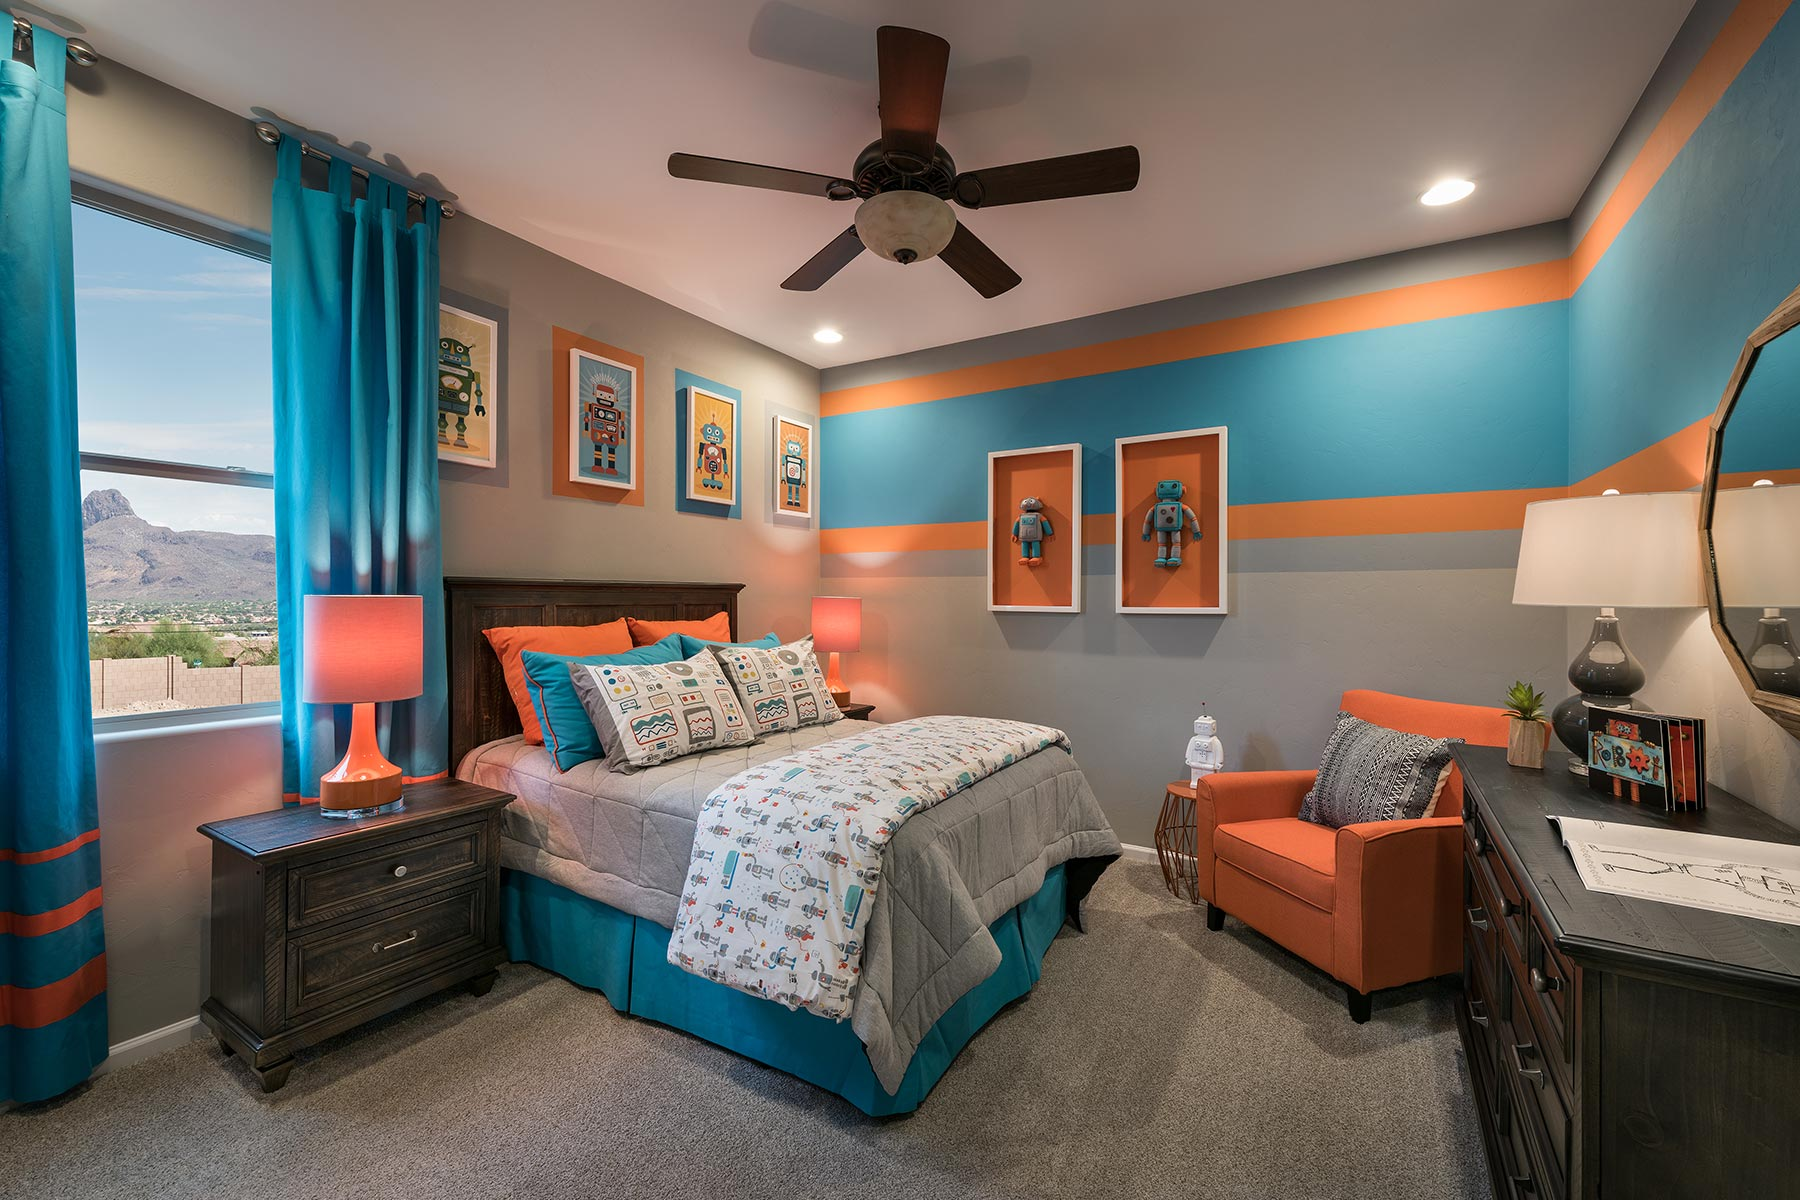 Agave Plan Bedroom at Desert Oasis at Twin Peaks in Marana Arizona by Mattamy Homes